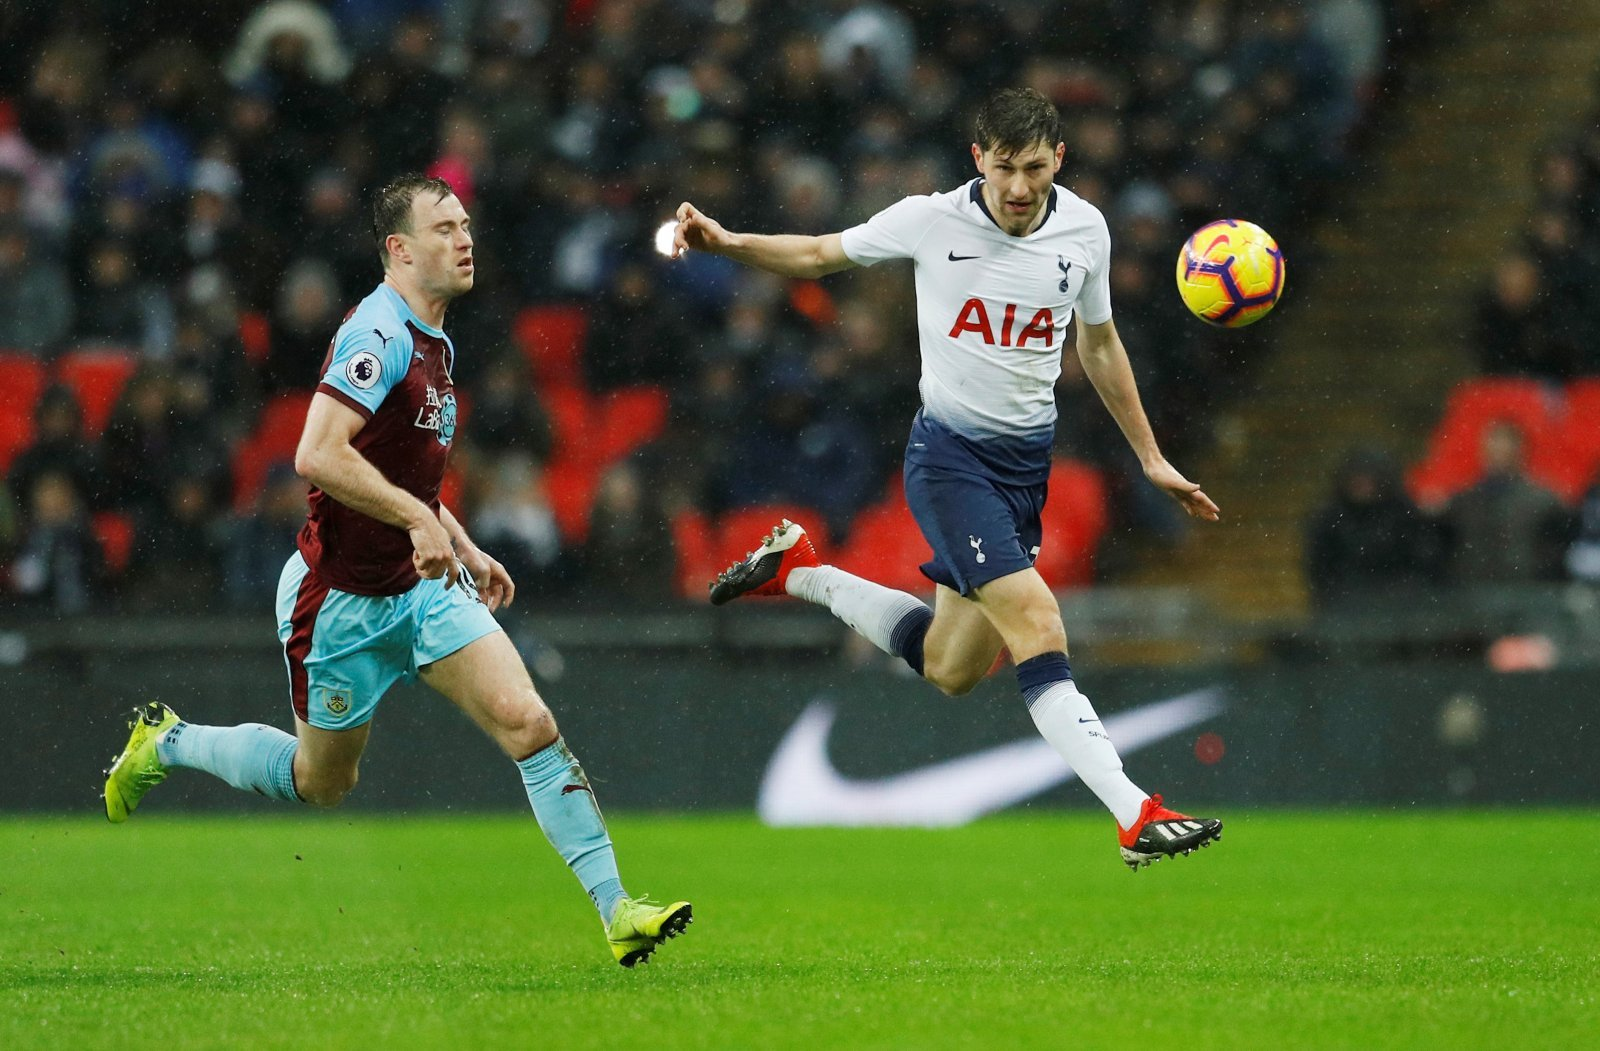 Tottenham fans have been taking to Twitter to laud sublime Ben Davies